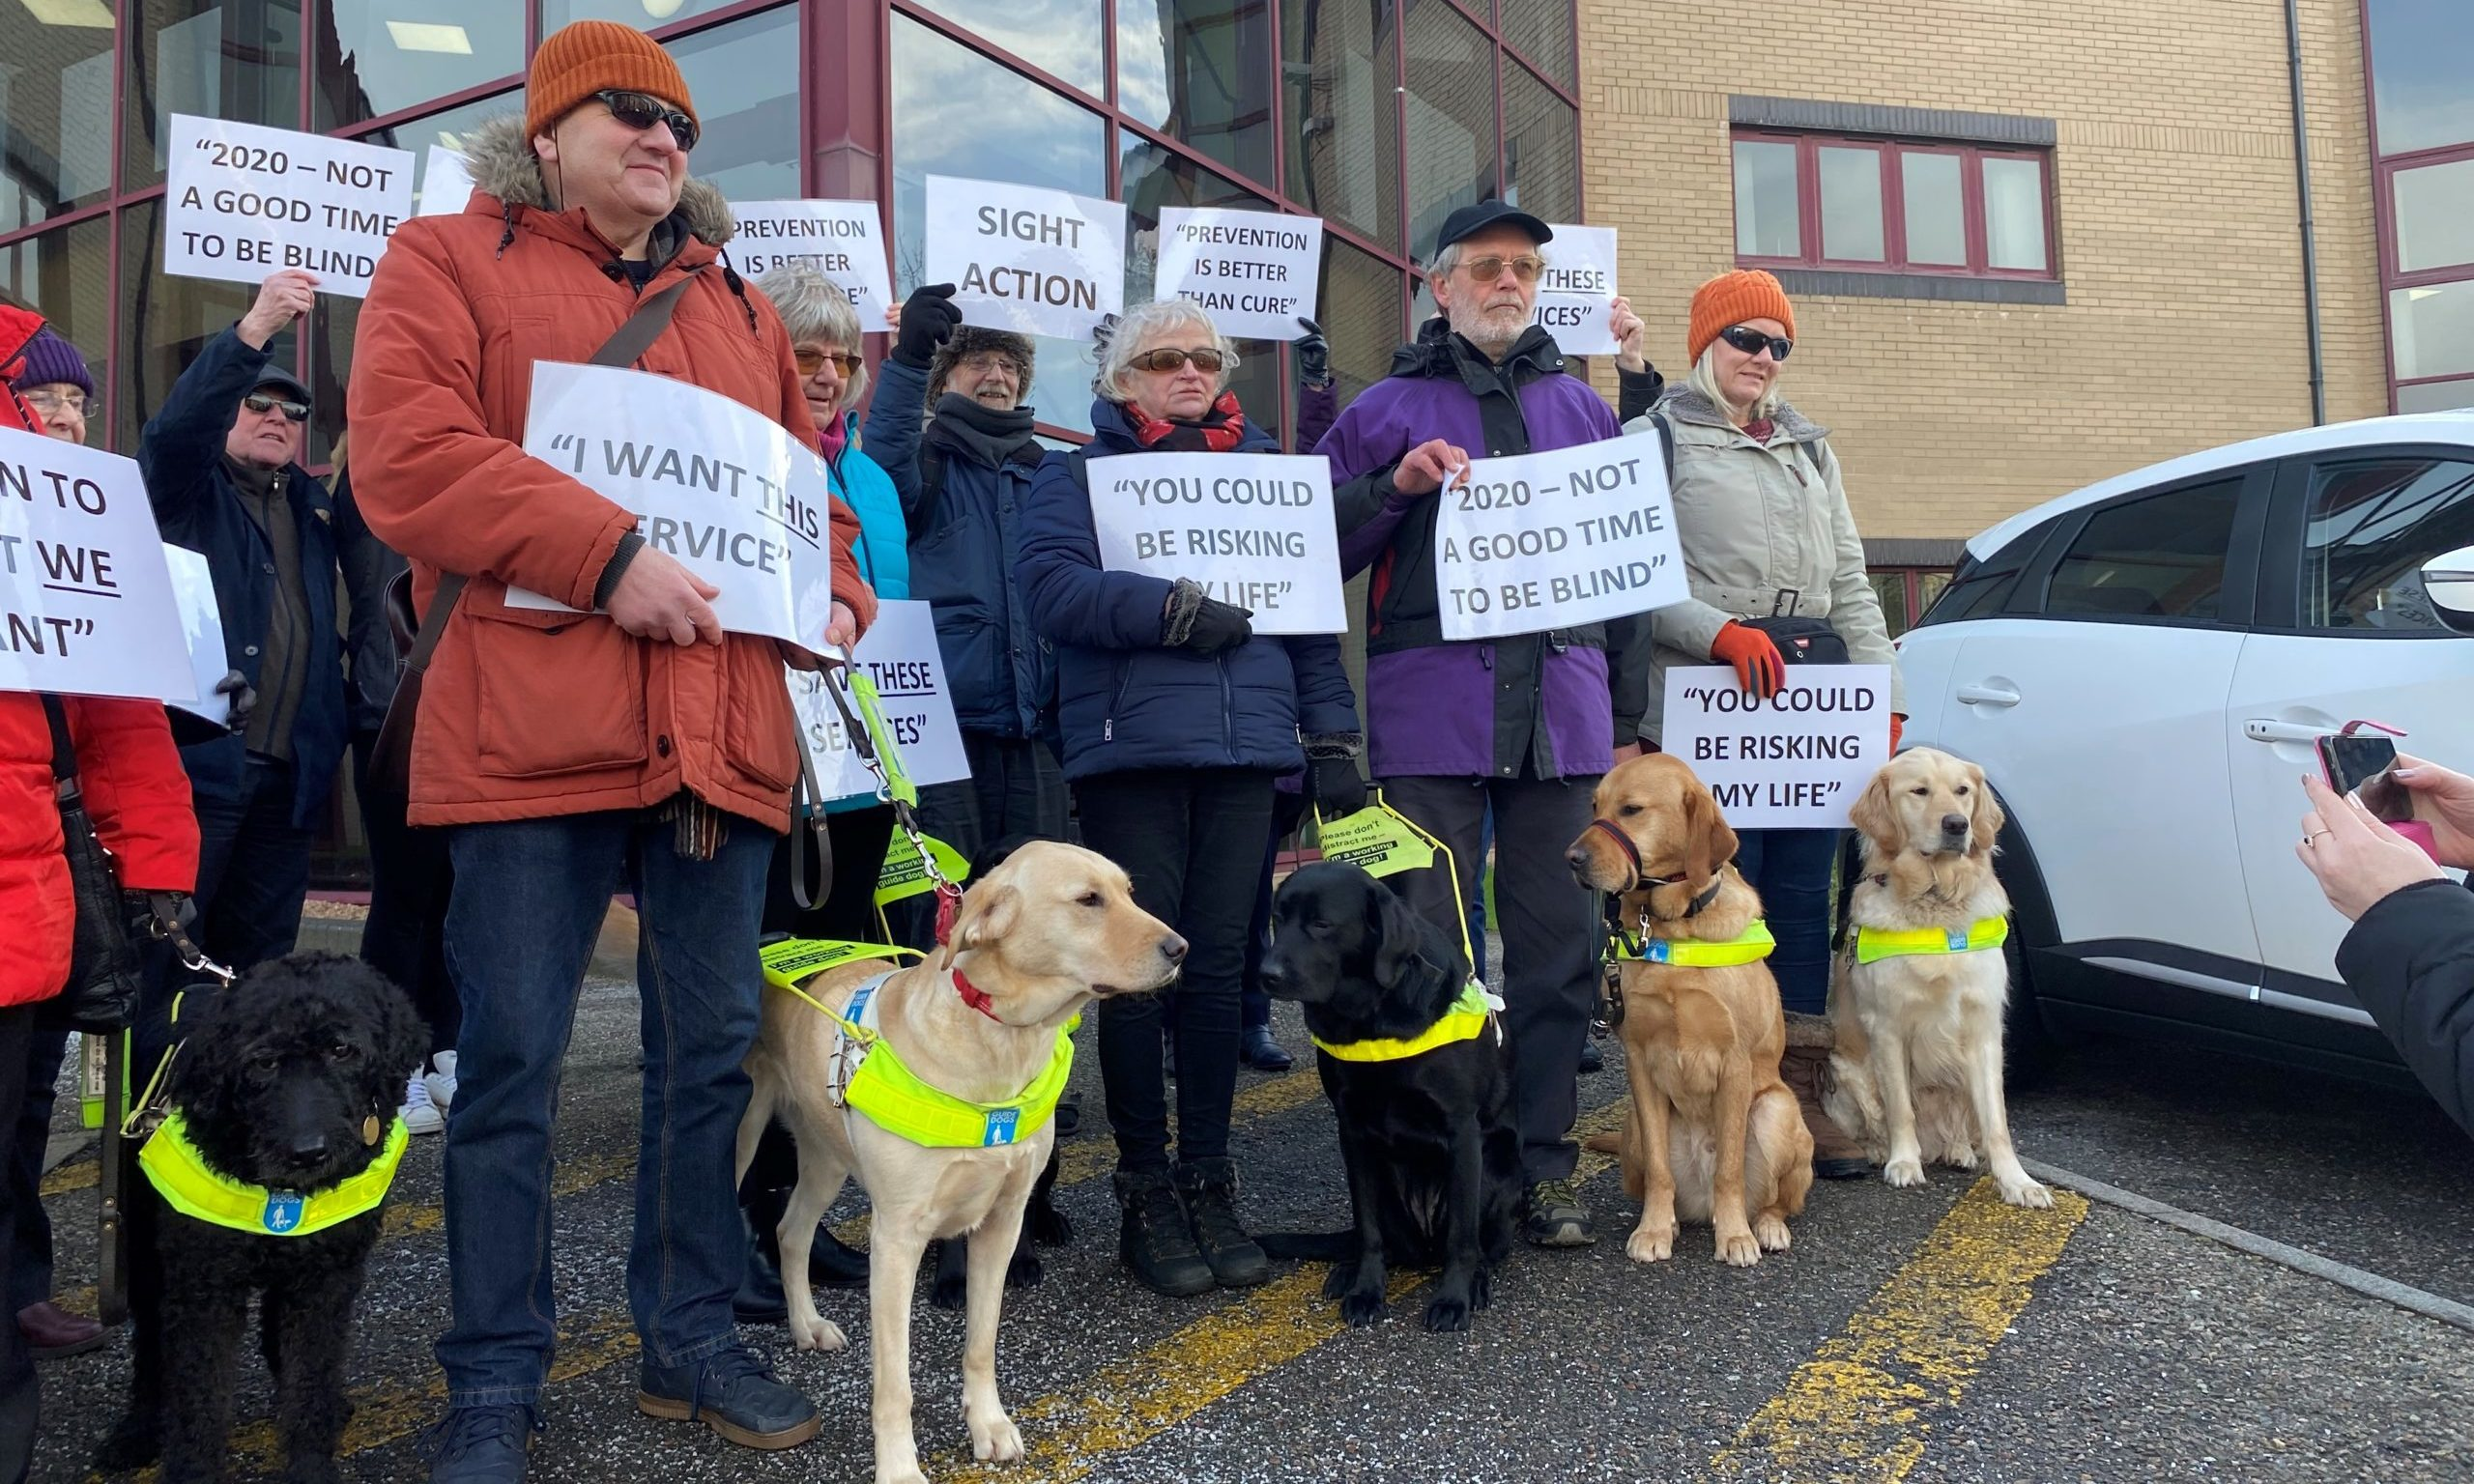 Campaigners gathered yesterday in a bid to save the charity